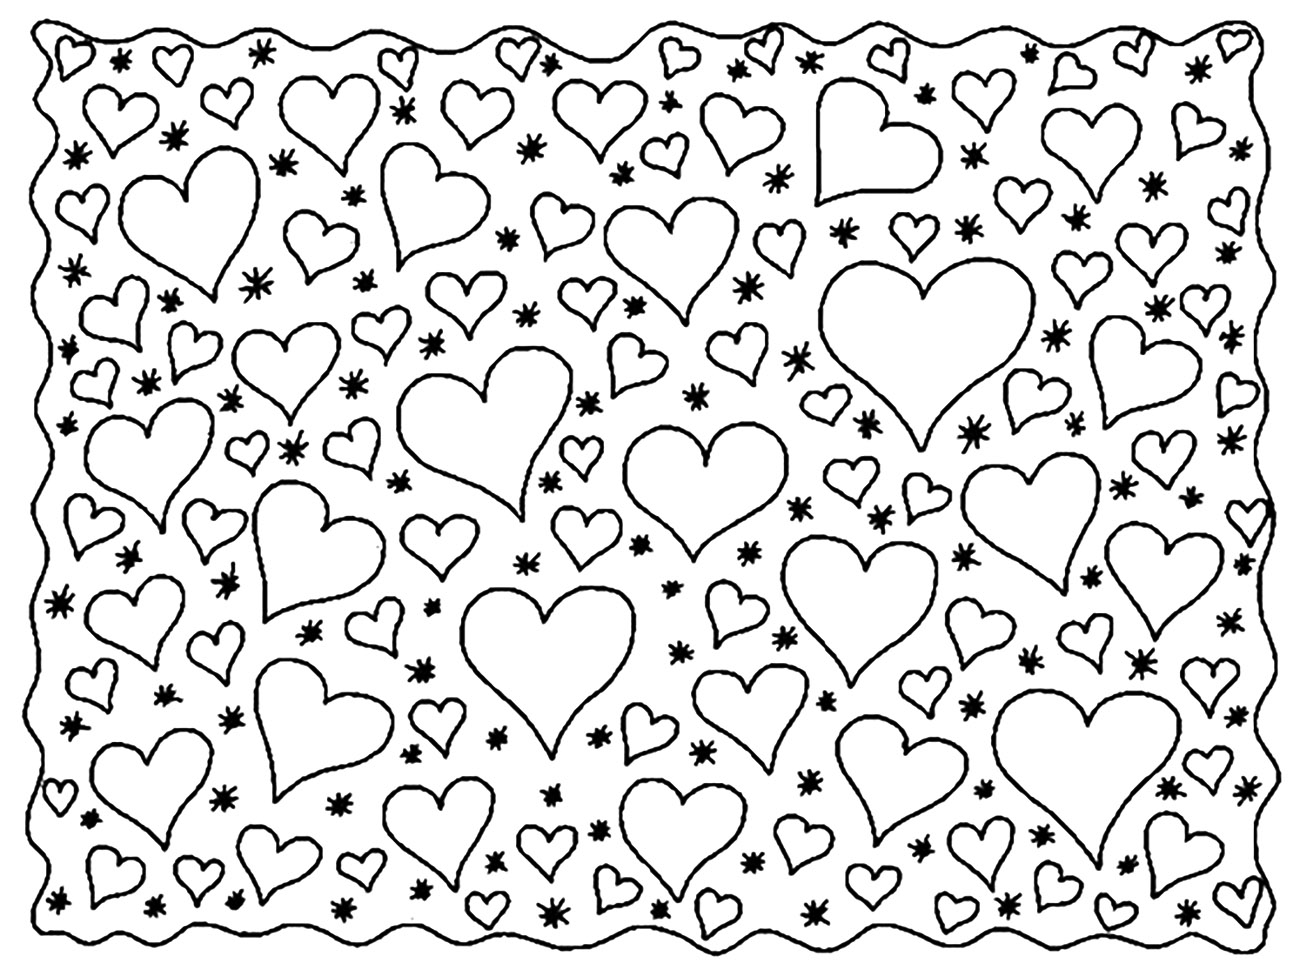 pictures of hearts to color heart coloring pages for adults of pictures hearts to color